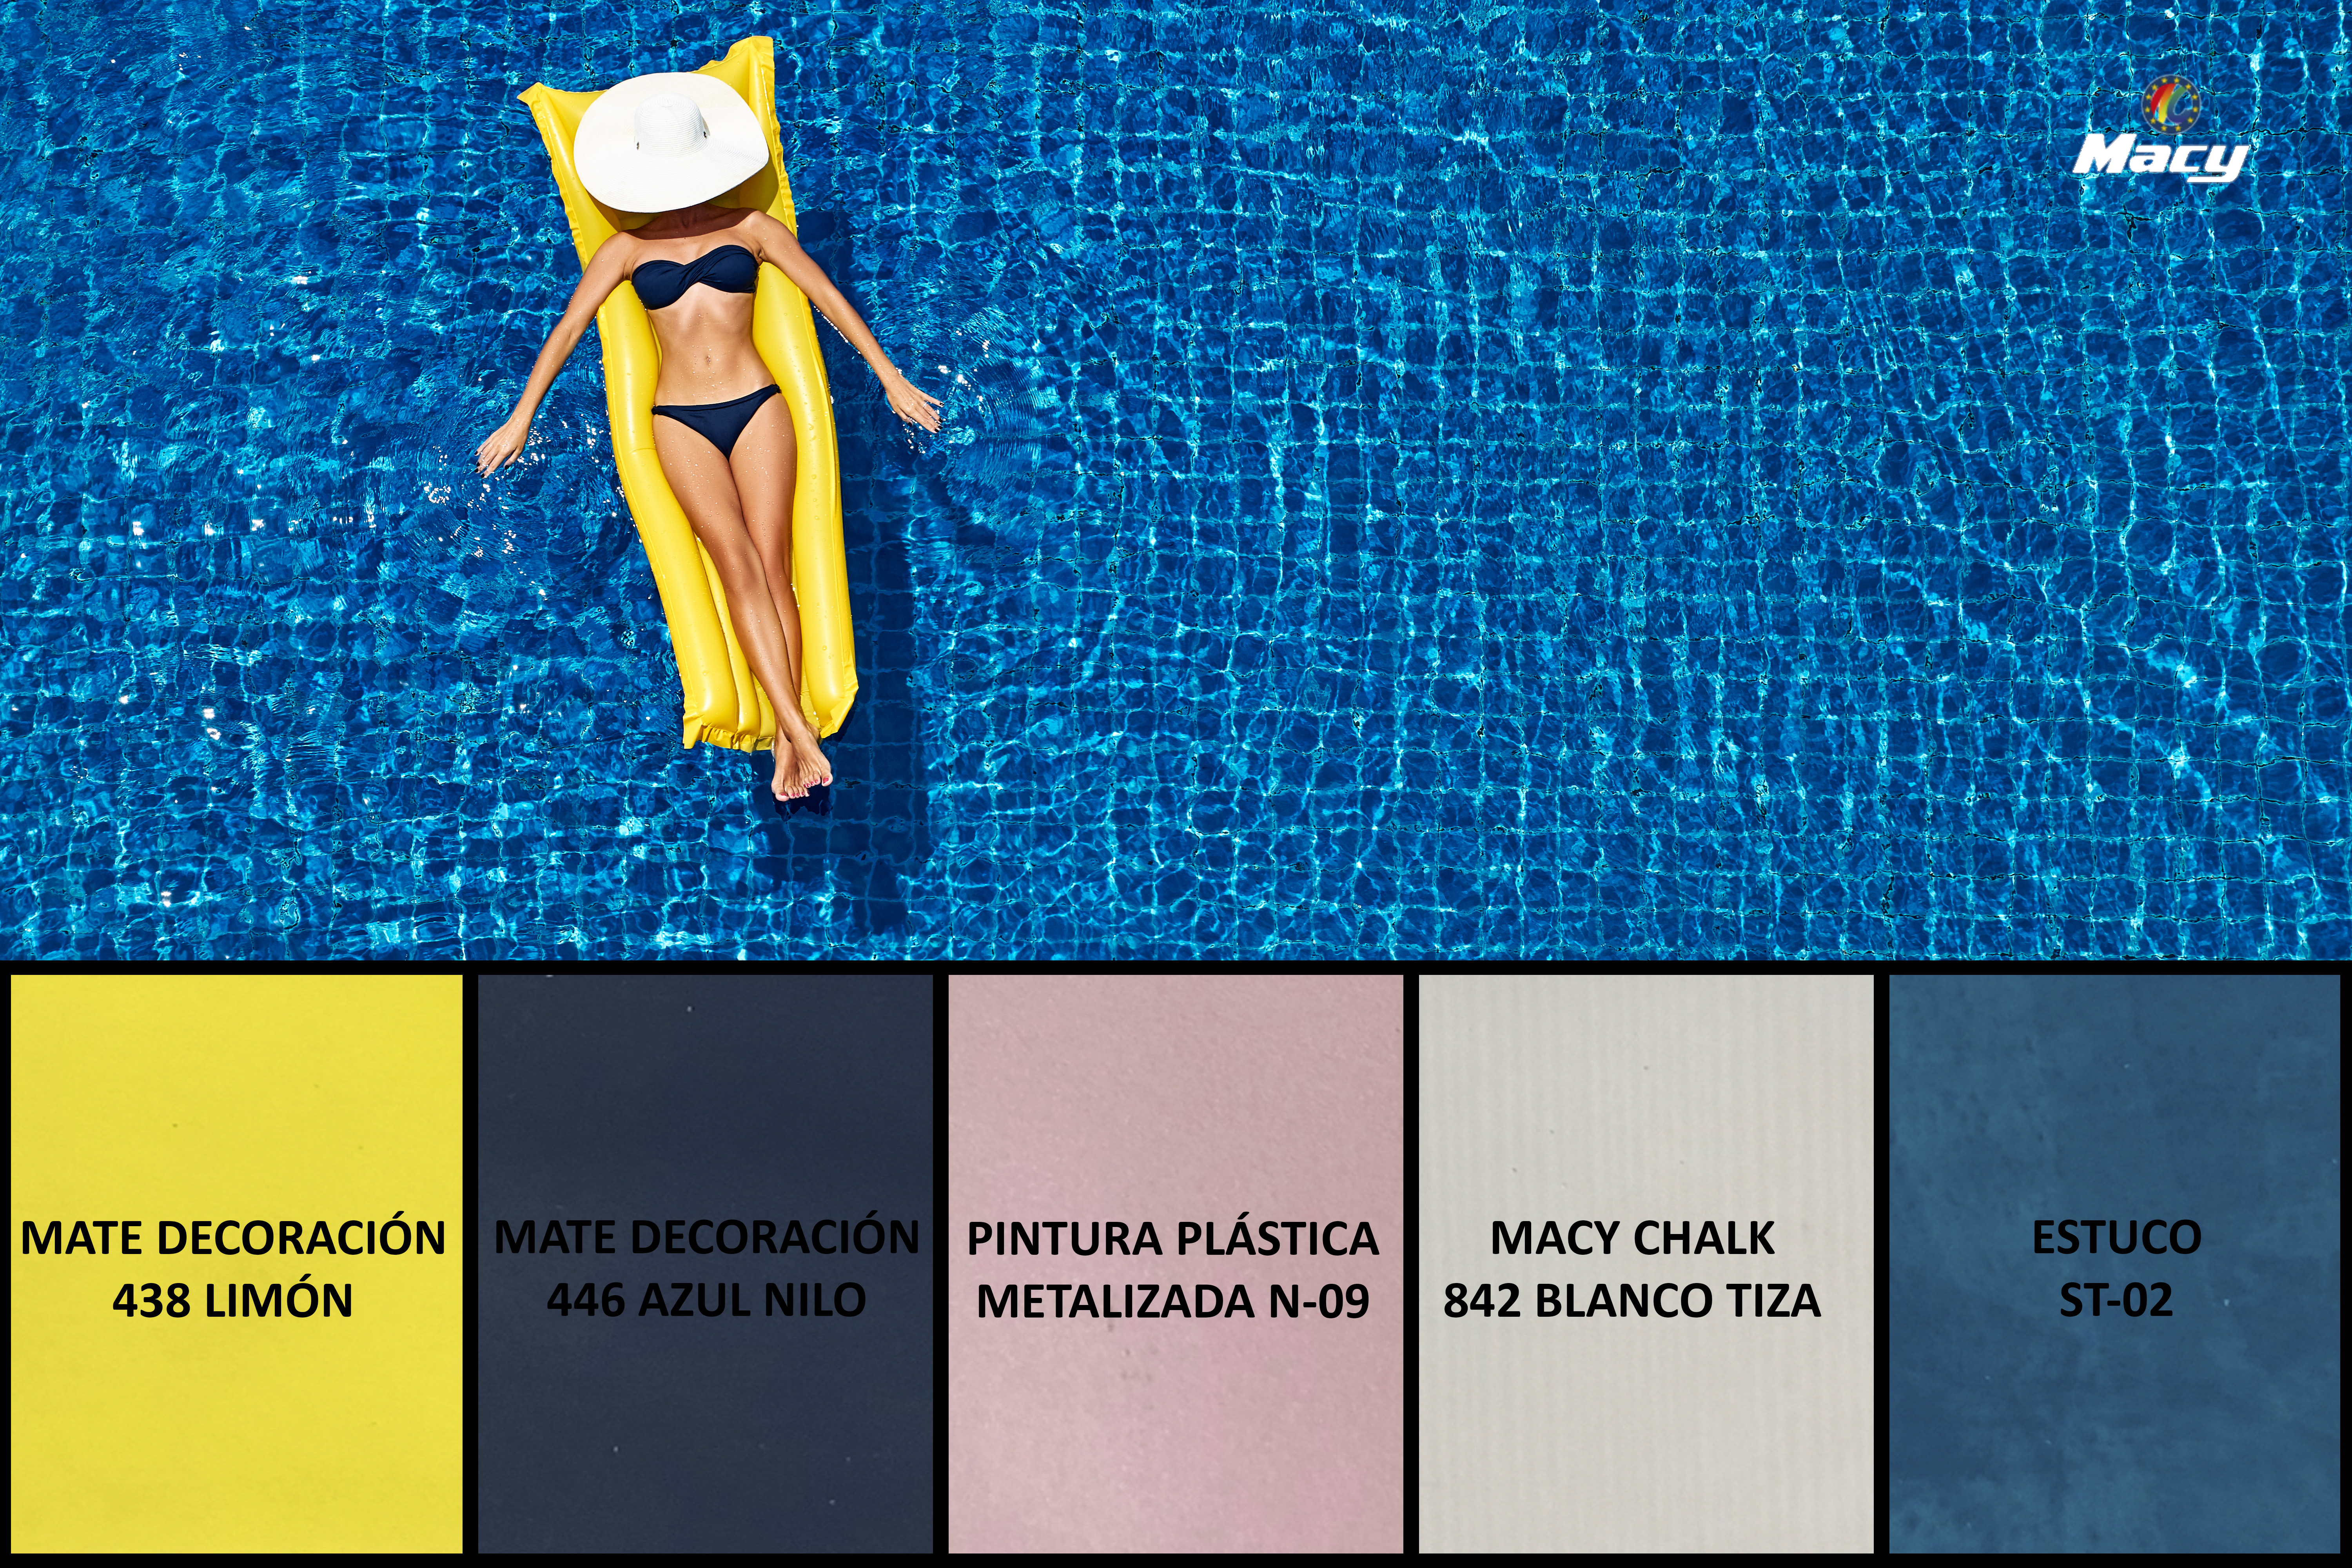 A SWIMMING-POOL, THE SOURCE OF INSPIRATION FOR OUR LATEST COLOR PROPOSAL